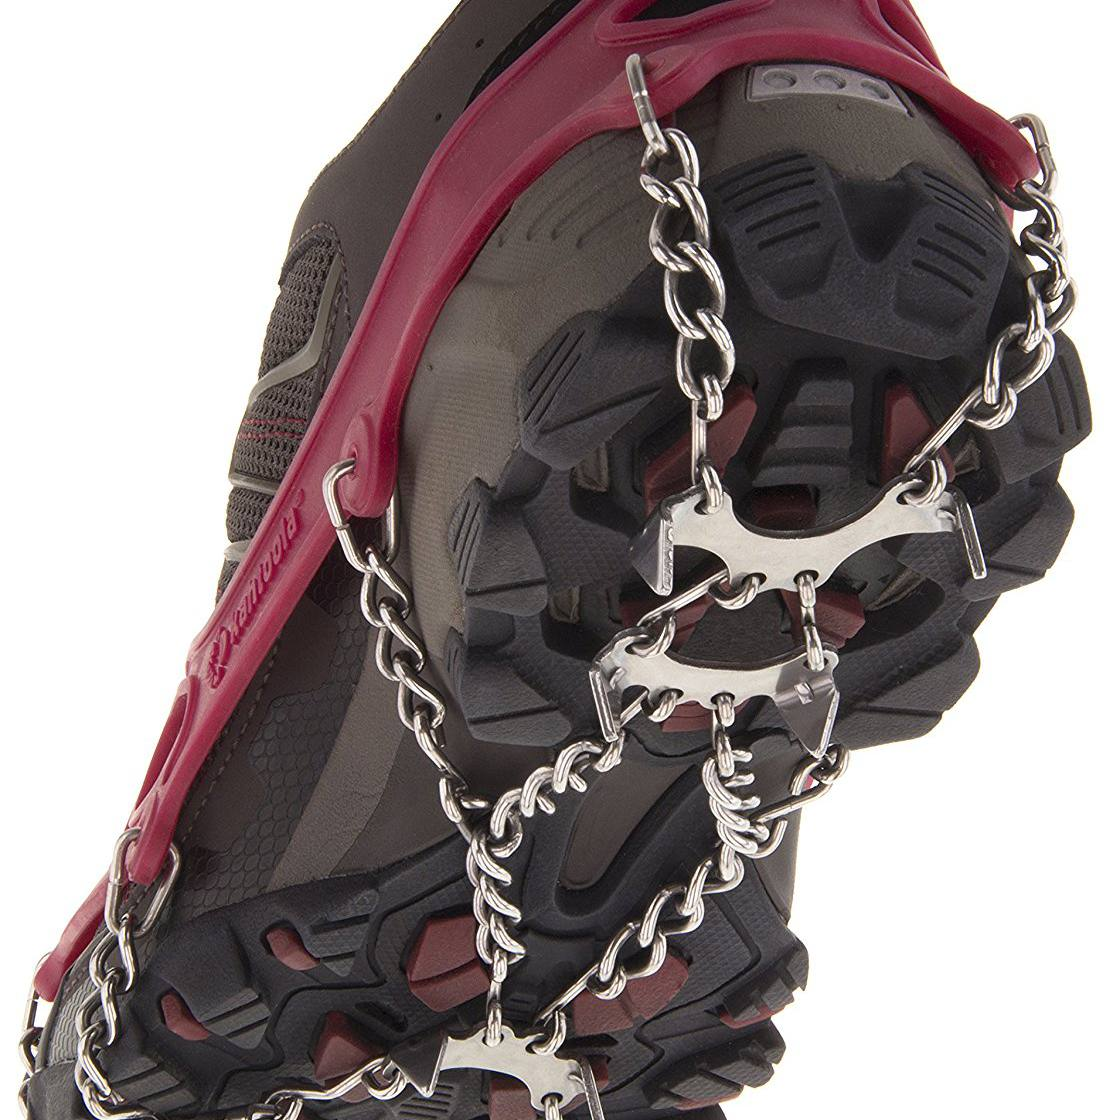 Grippers Spikes Anti-Slip Over Shoe Ice Climbing Shoes Gripper Spike Anti Skid Non-Slip Gripper Spikes Suitable for All Type of Shoes Easy to Pull On or Take Off Good Elasticity